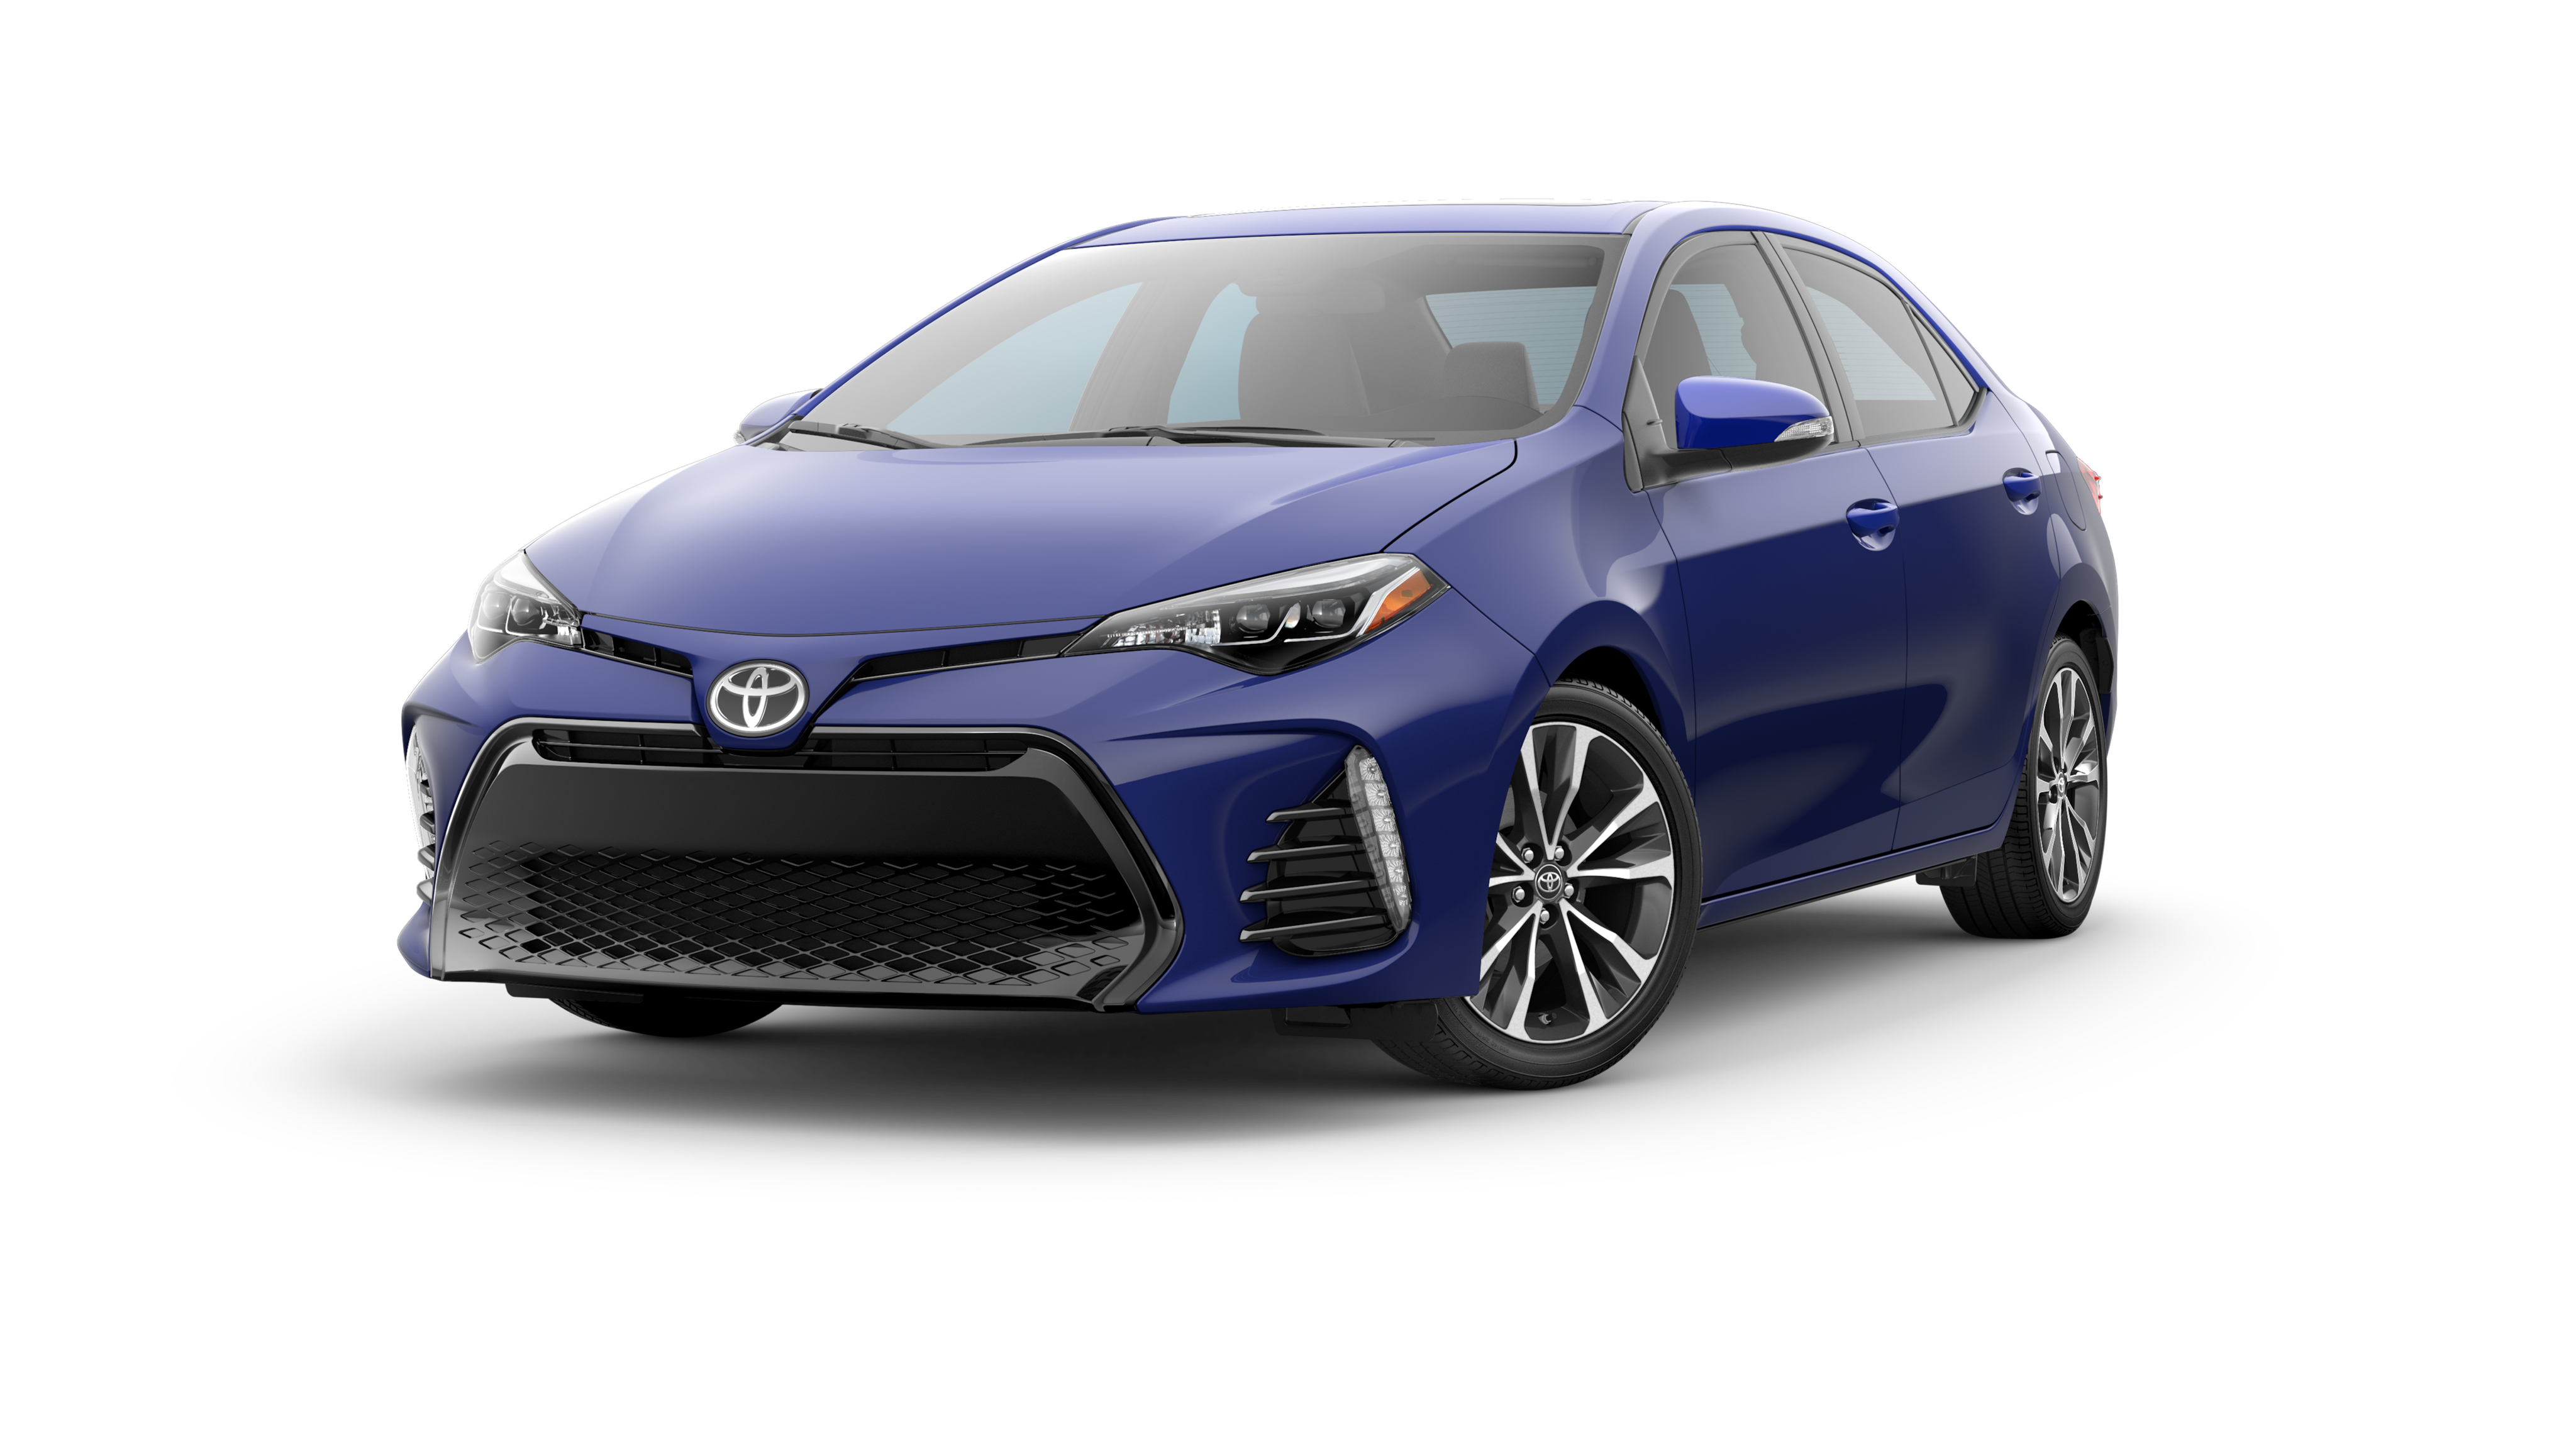 Review of 2019 Toyota Corolla Here at Larry H Miller Toyota Lemon Grove near San Diego